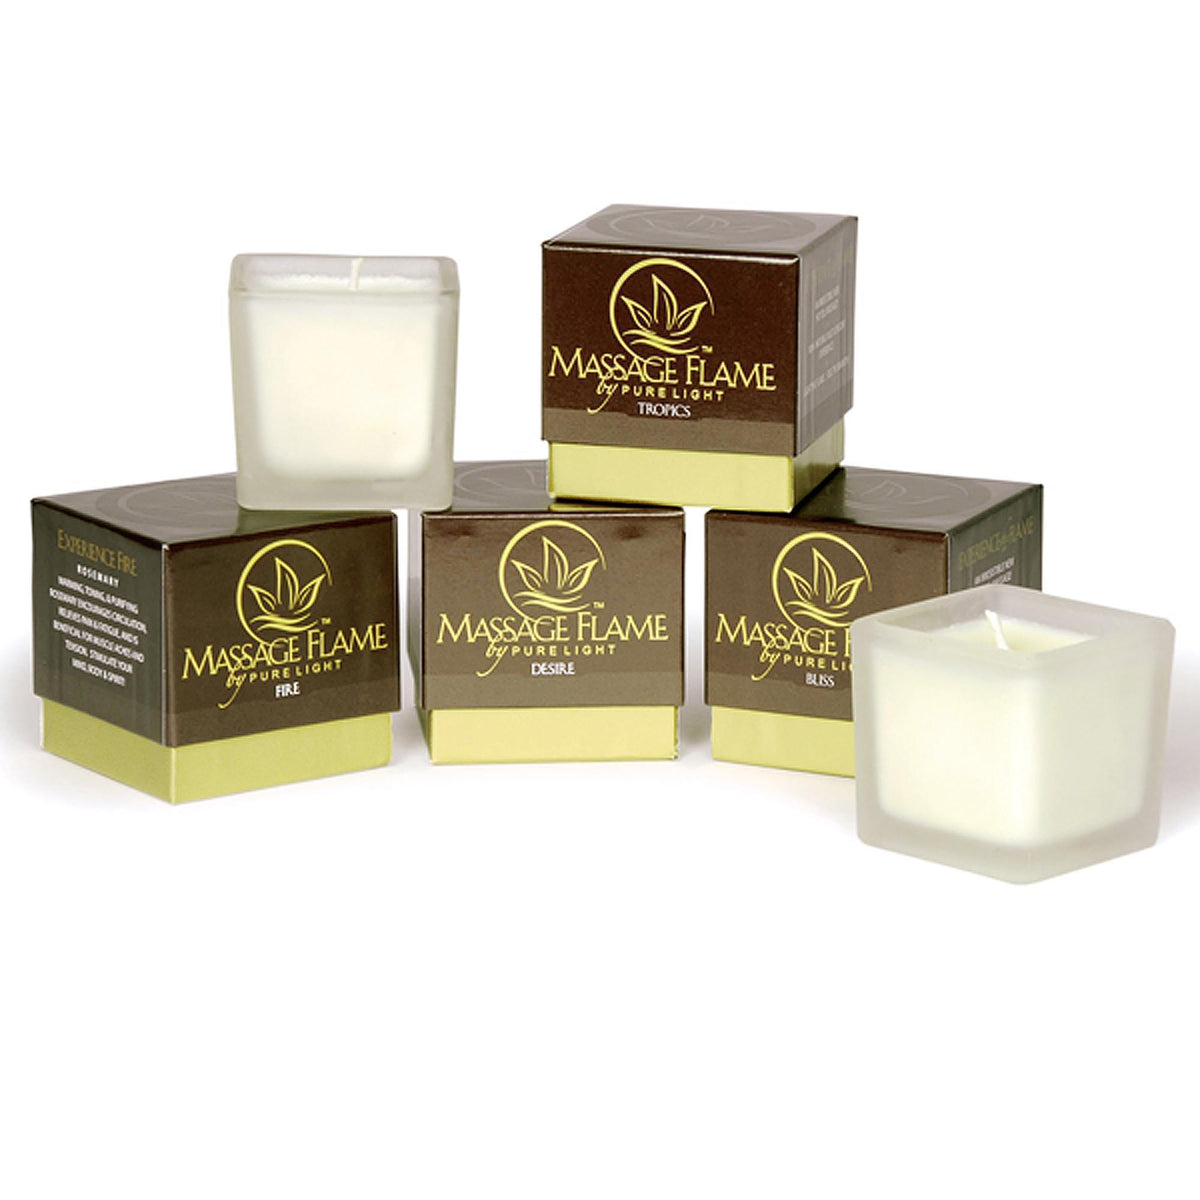 Pure Light Ice Massage Flame Candle